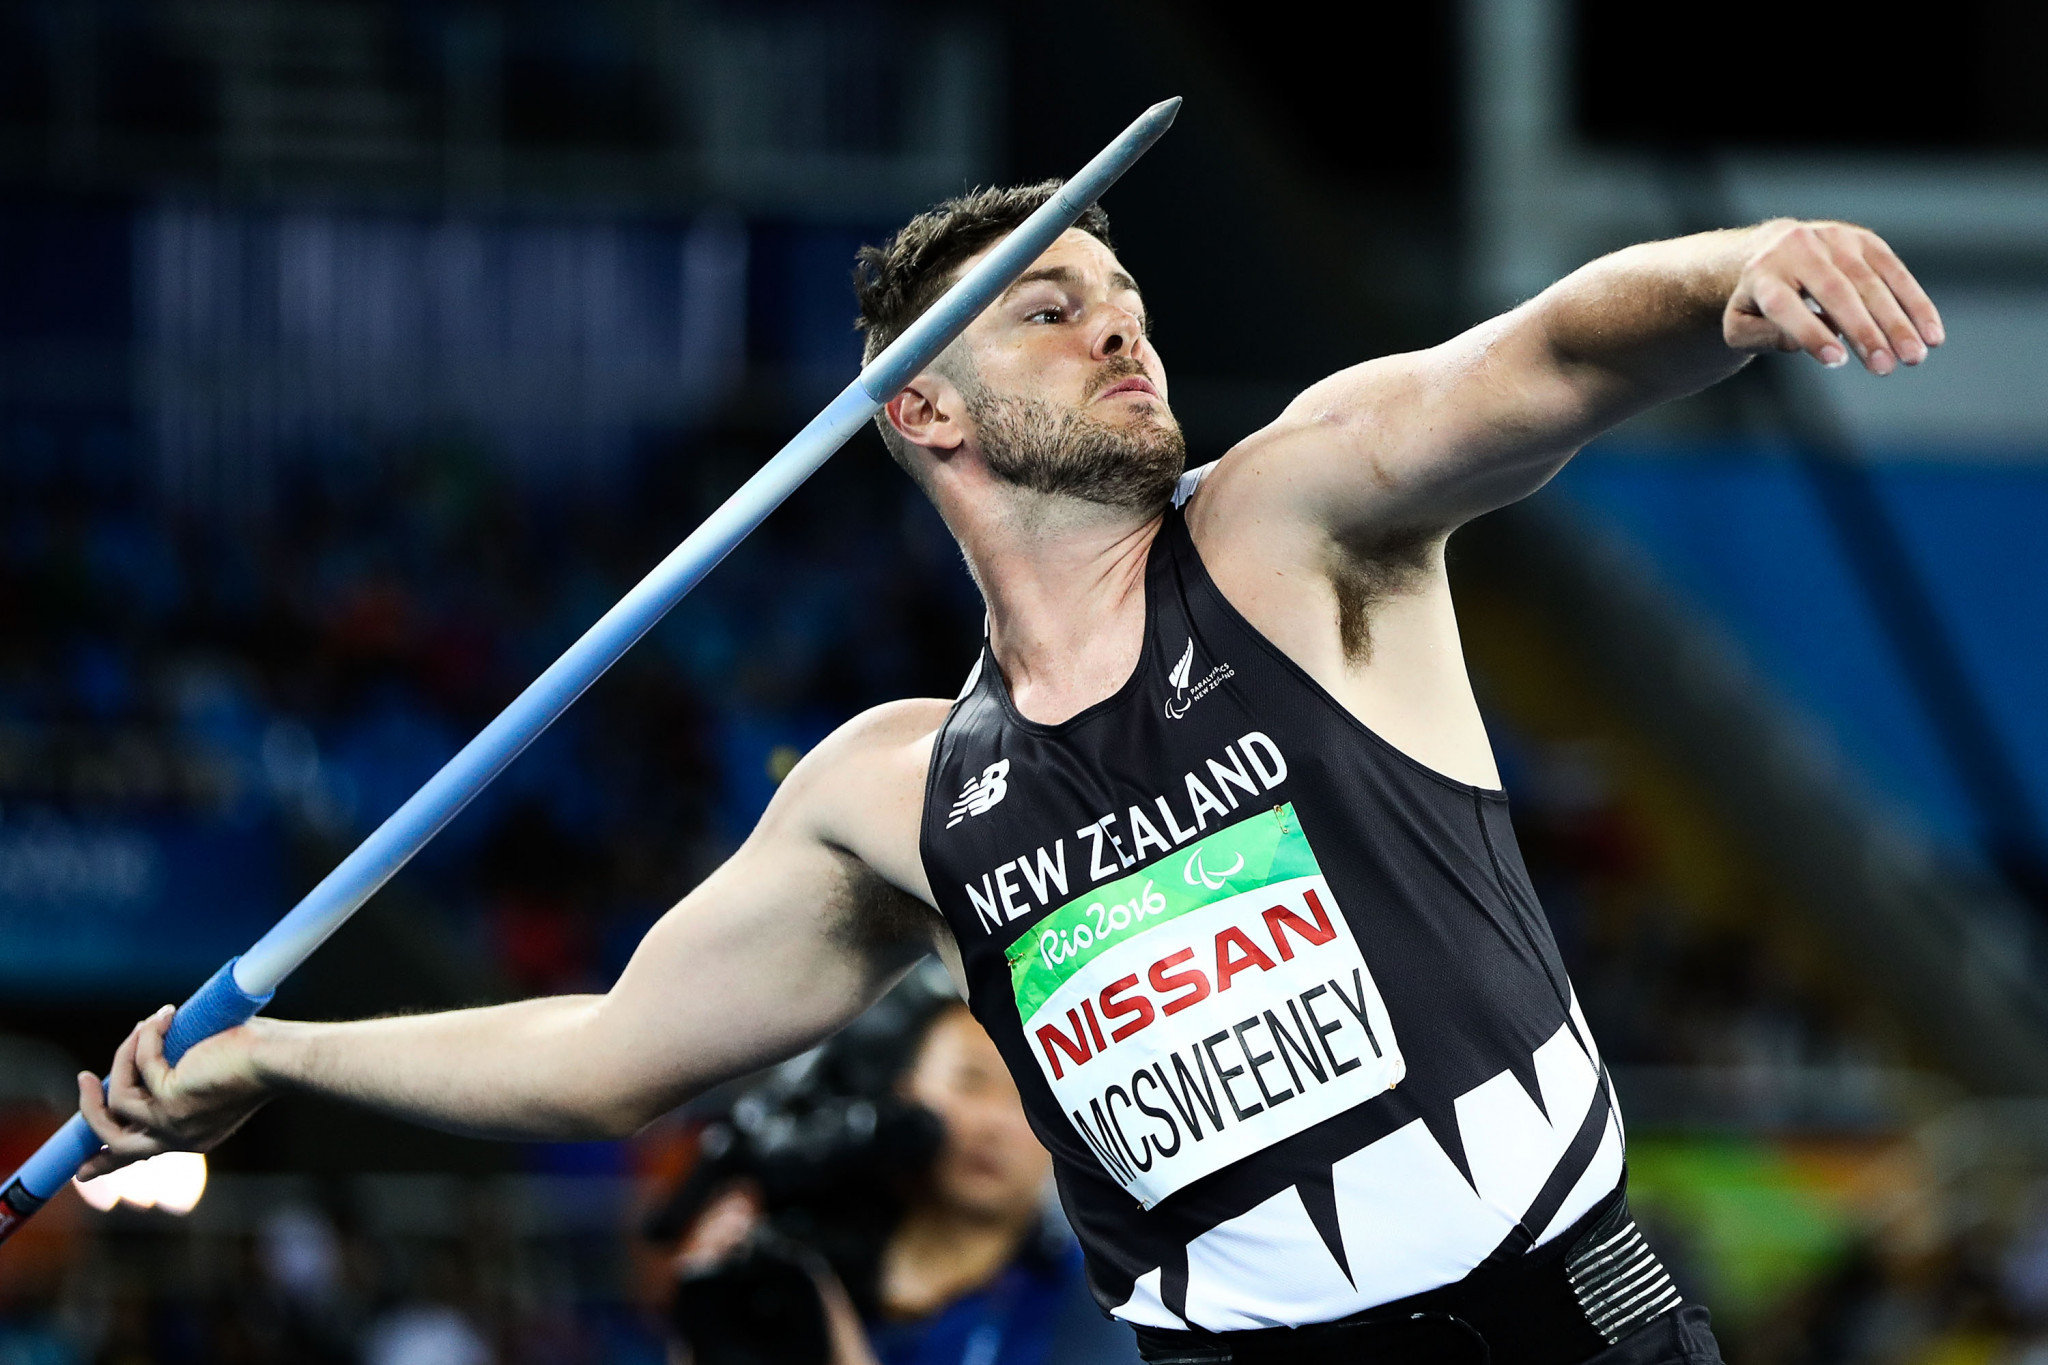 New Zealand's Paralympic javelin bronze medallist Rory McSweeney has announced his retirement at the age of 34 ©Getty Images